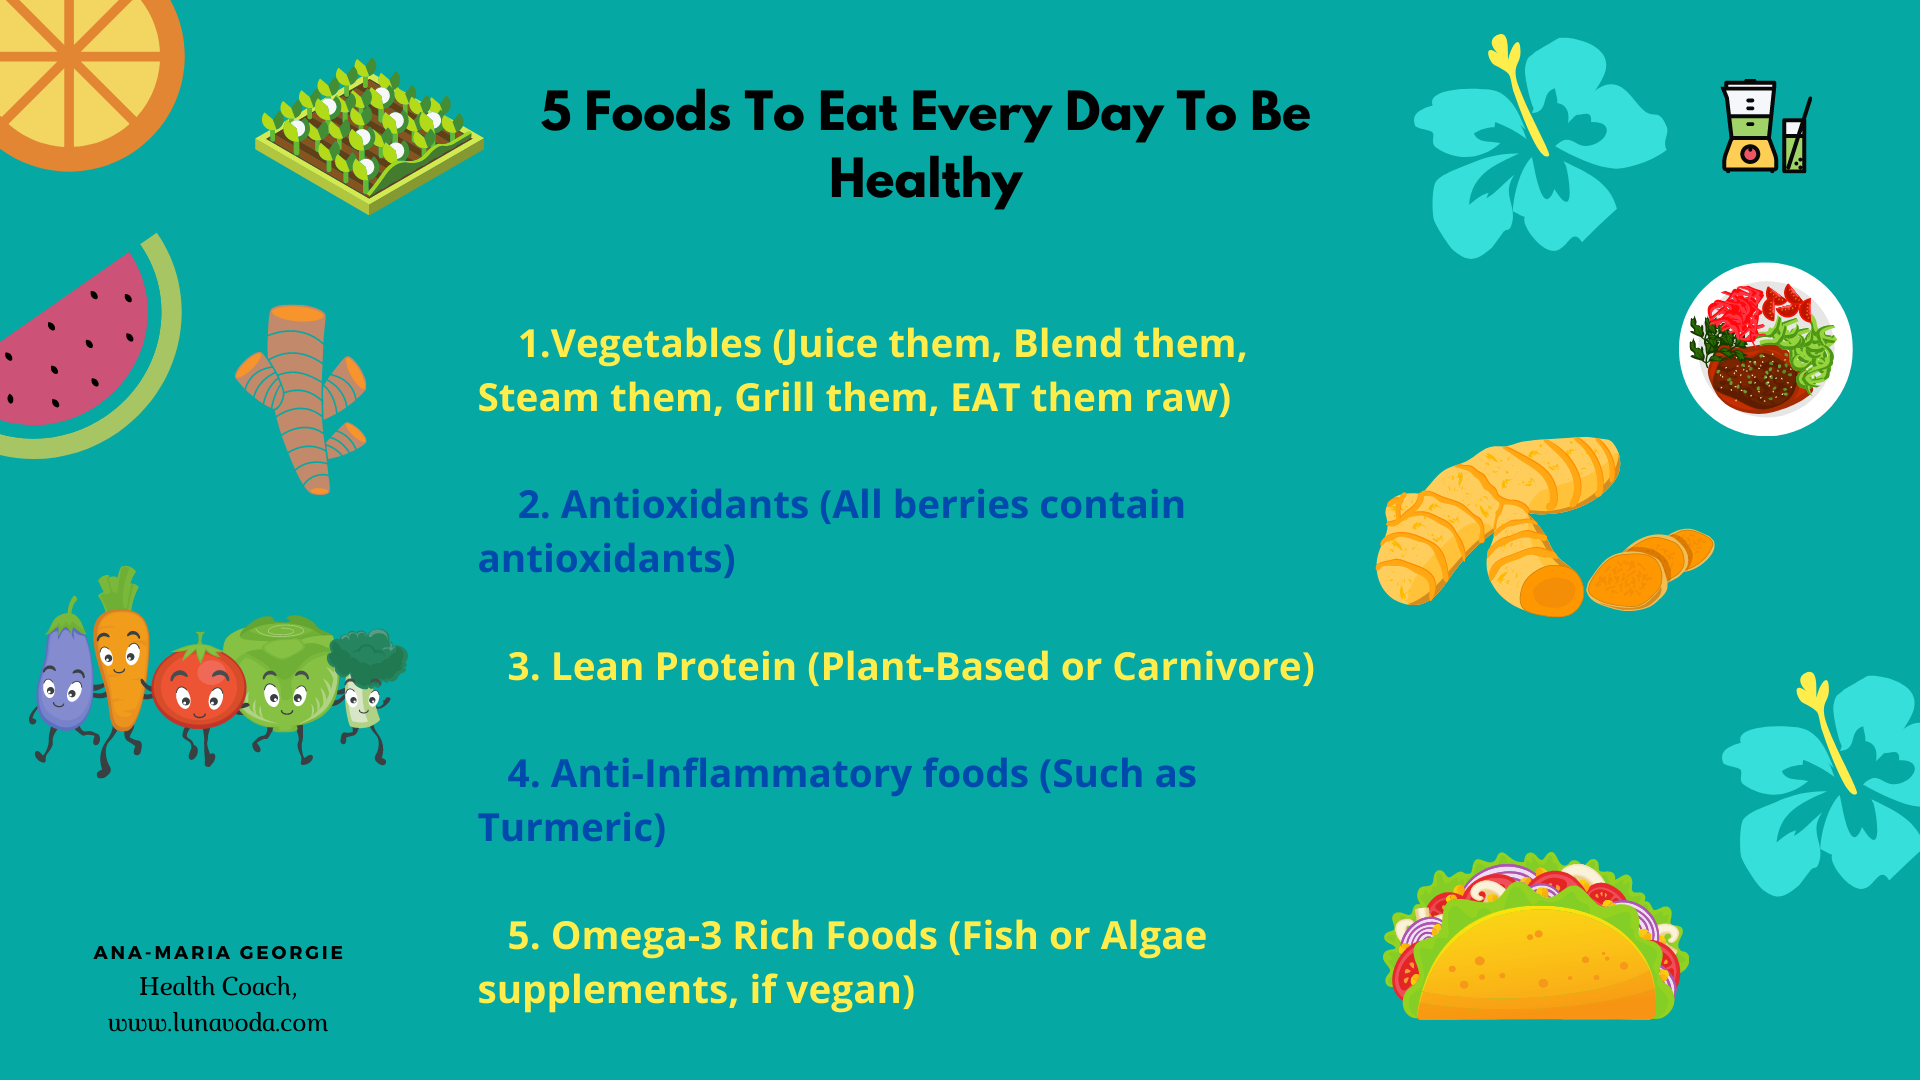 5 Foods To Eat Every Day To Be Healthy